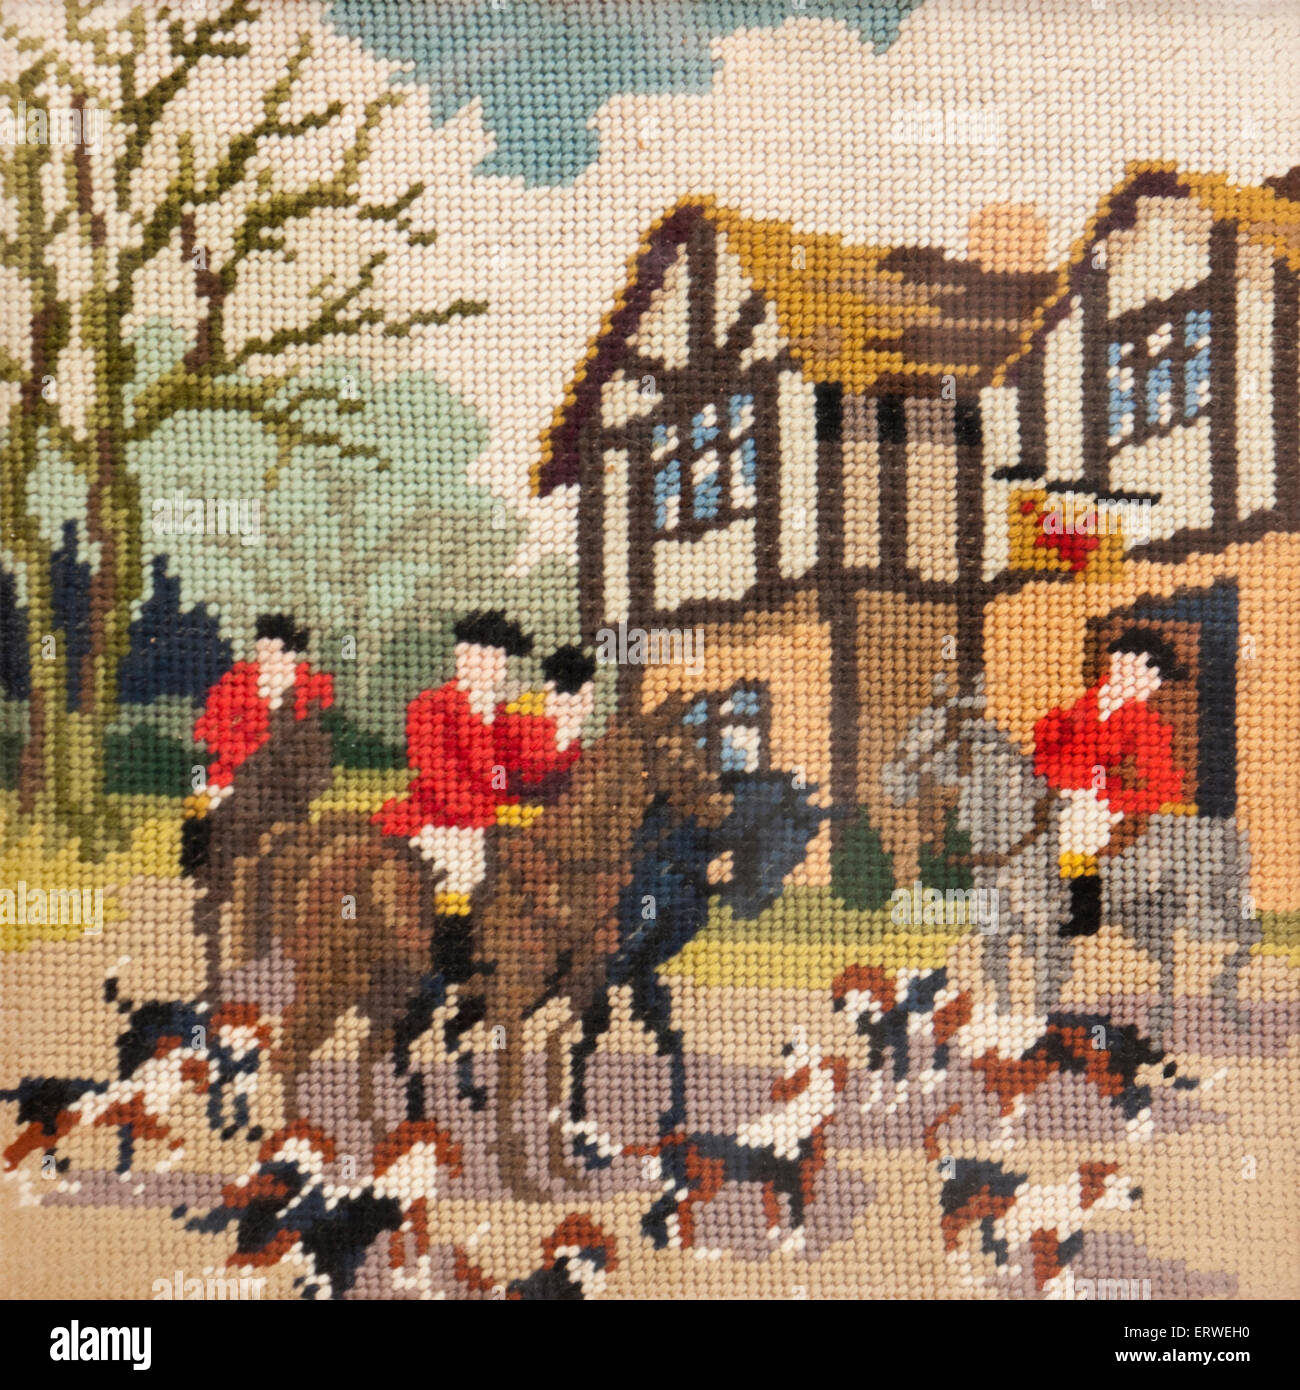 Cross stitch / needlework of a fox hunting scene in a village - Stock Image